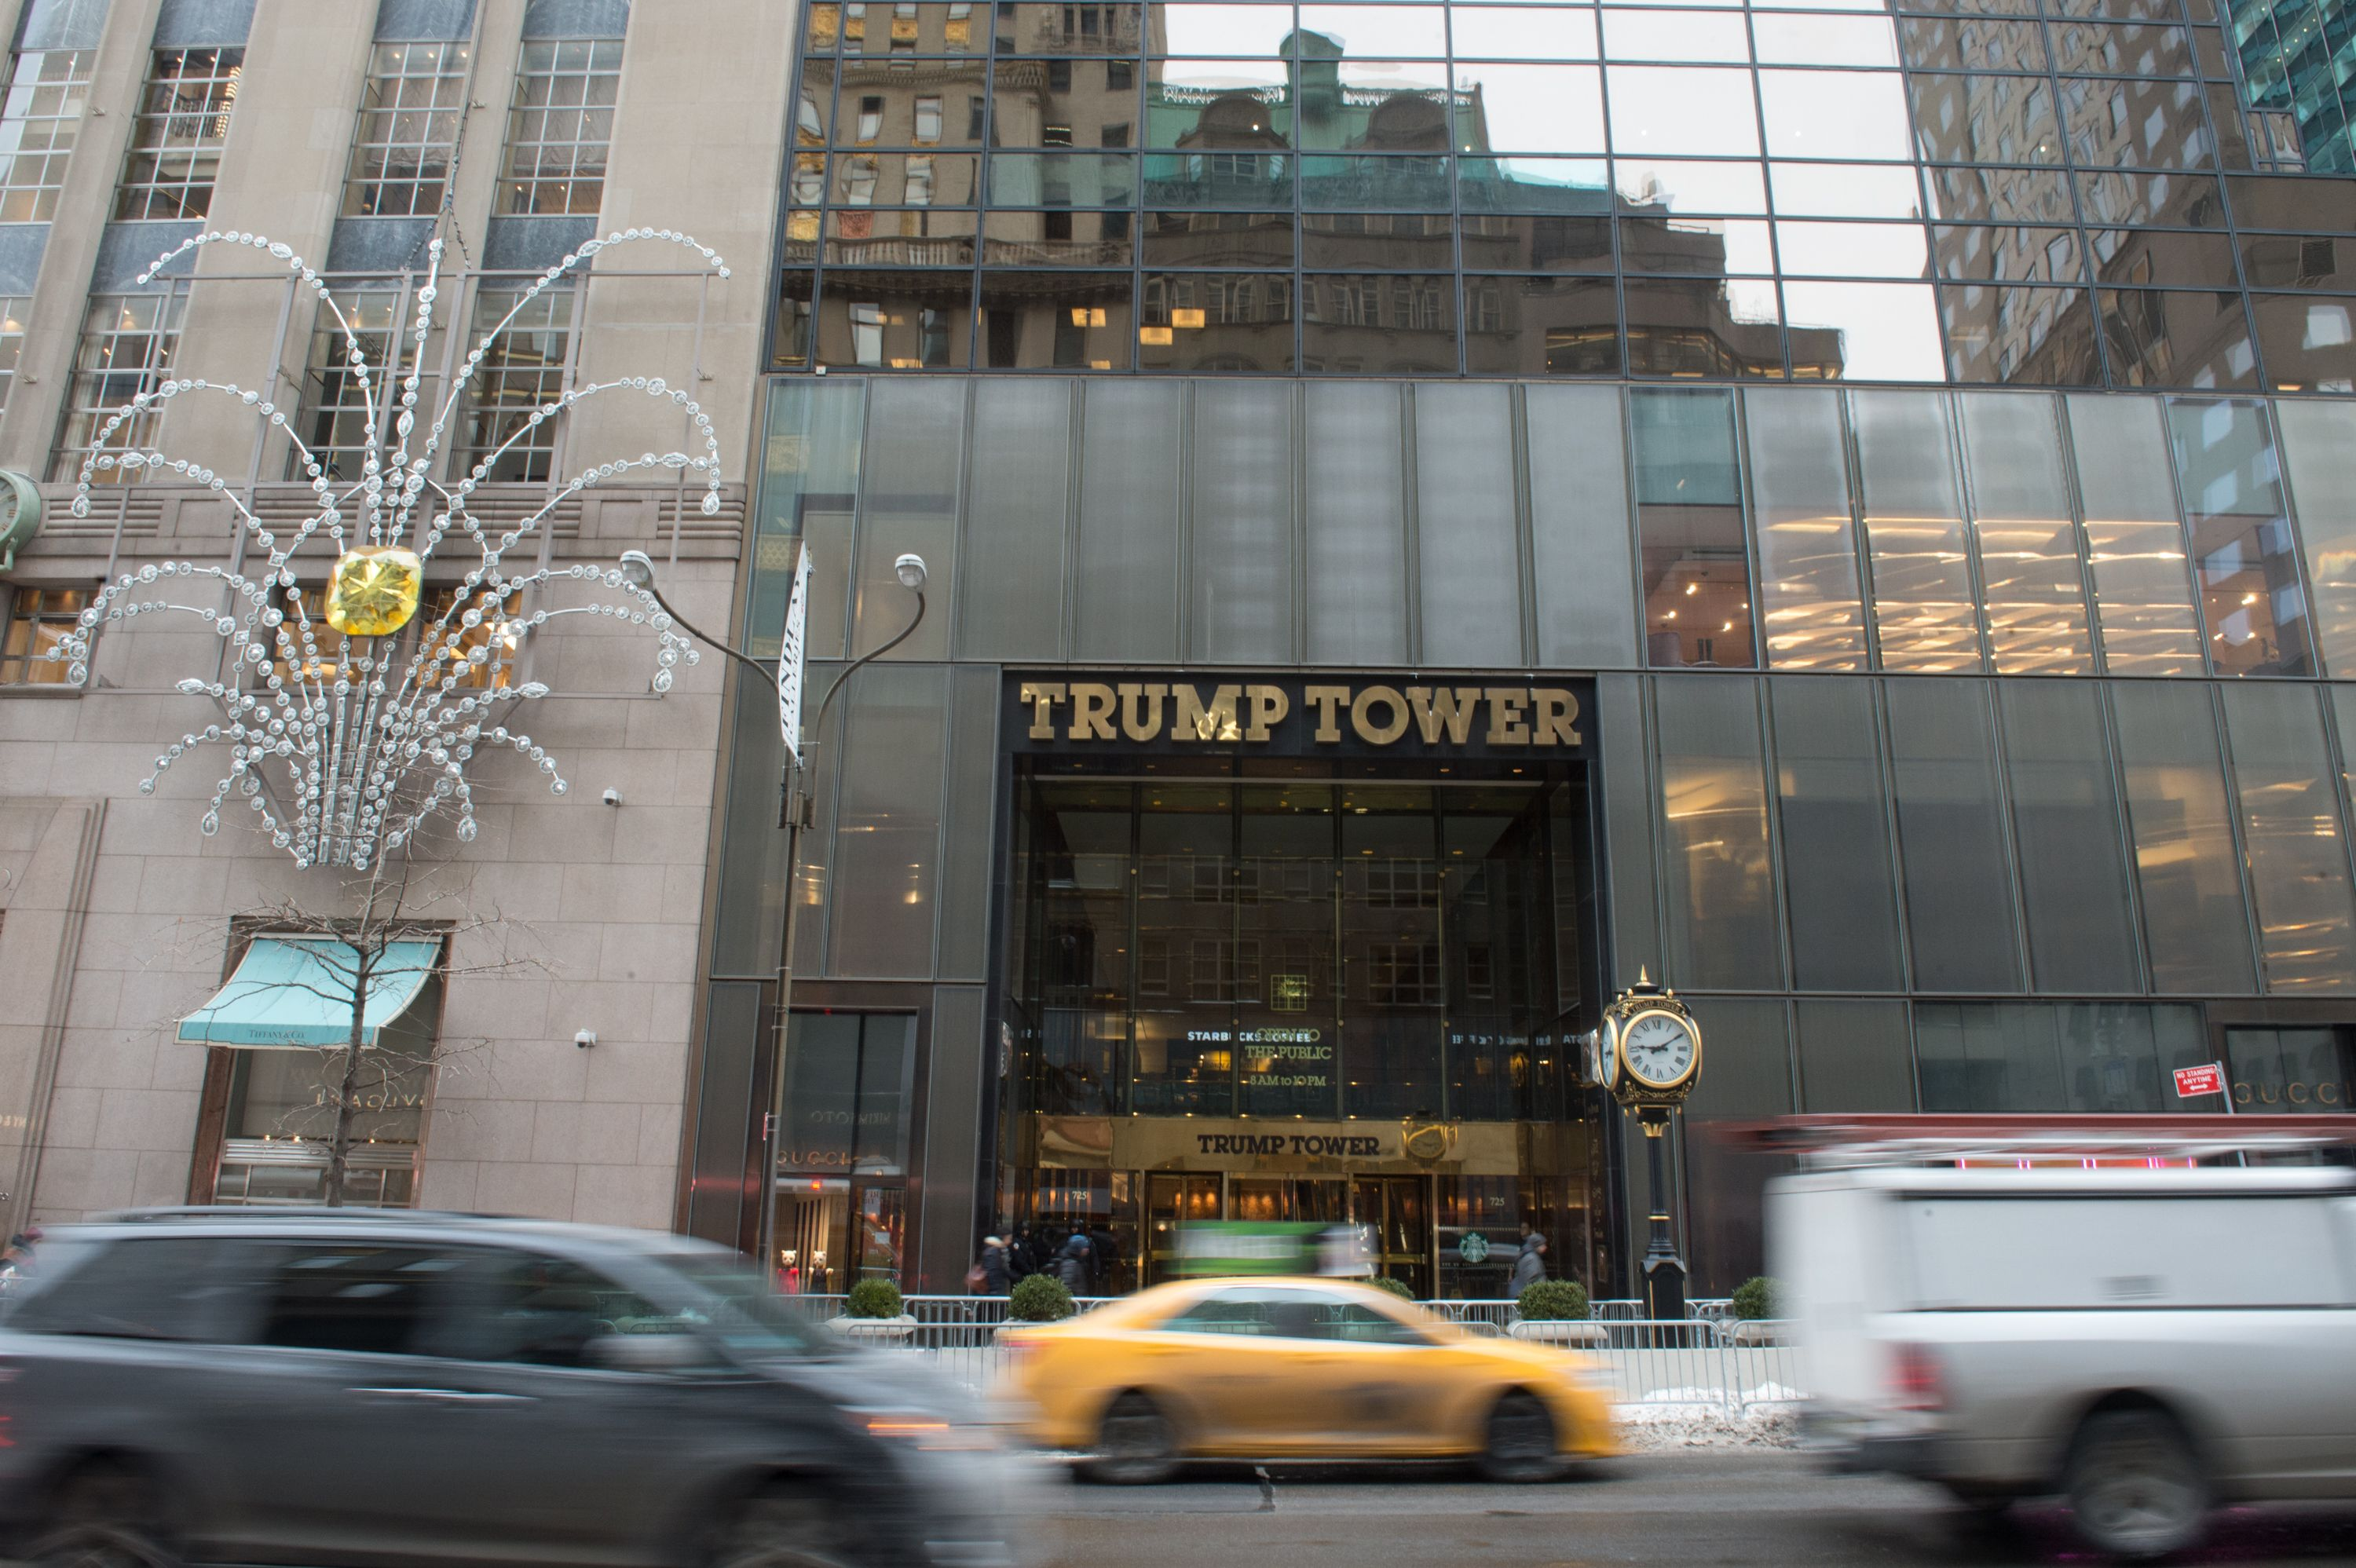 In this file photo taken on January 8, 2018, Cars drive past the front of Trump Tower on Fifth Avenue in New York. (BRYAN R. SMITH/AFP/Getty Images)